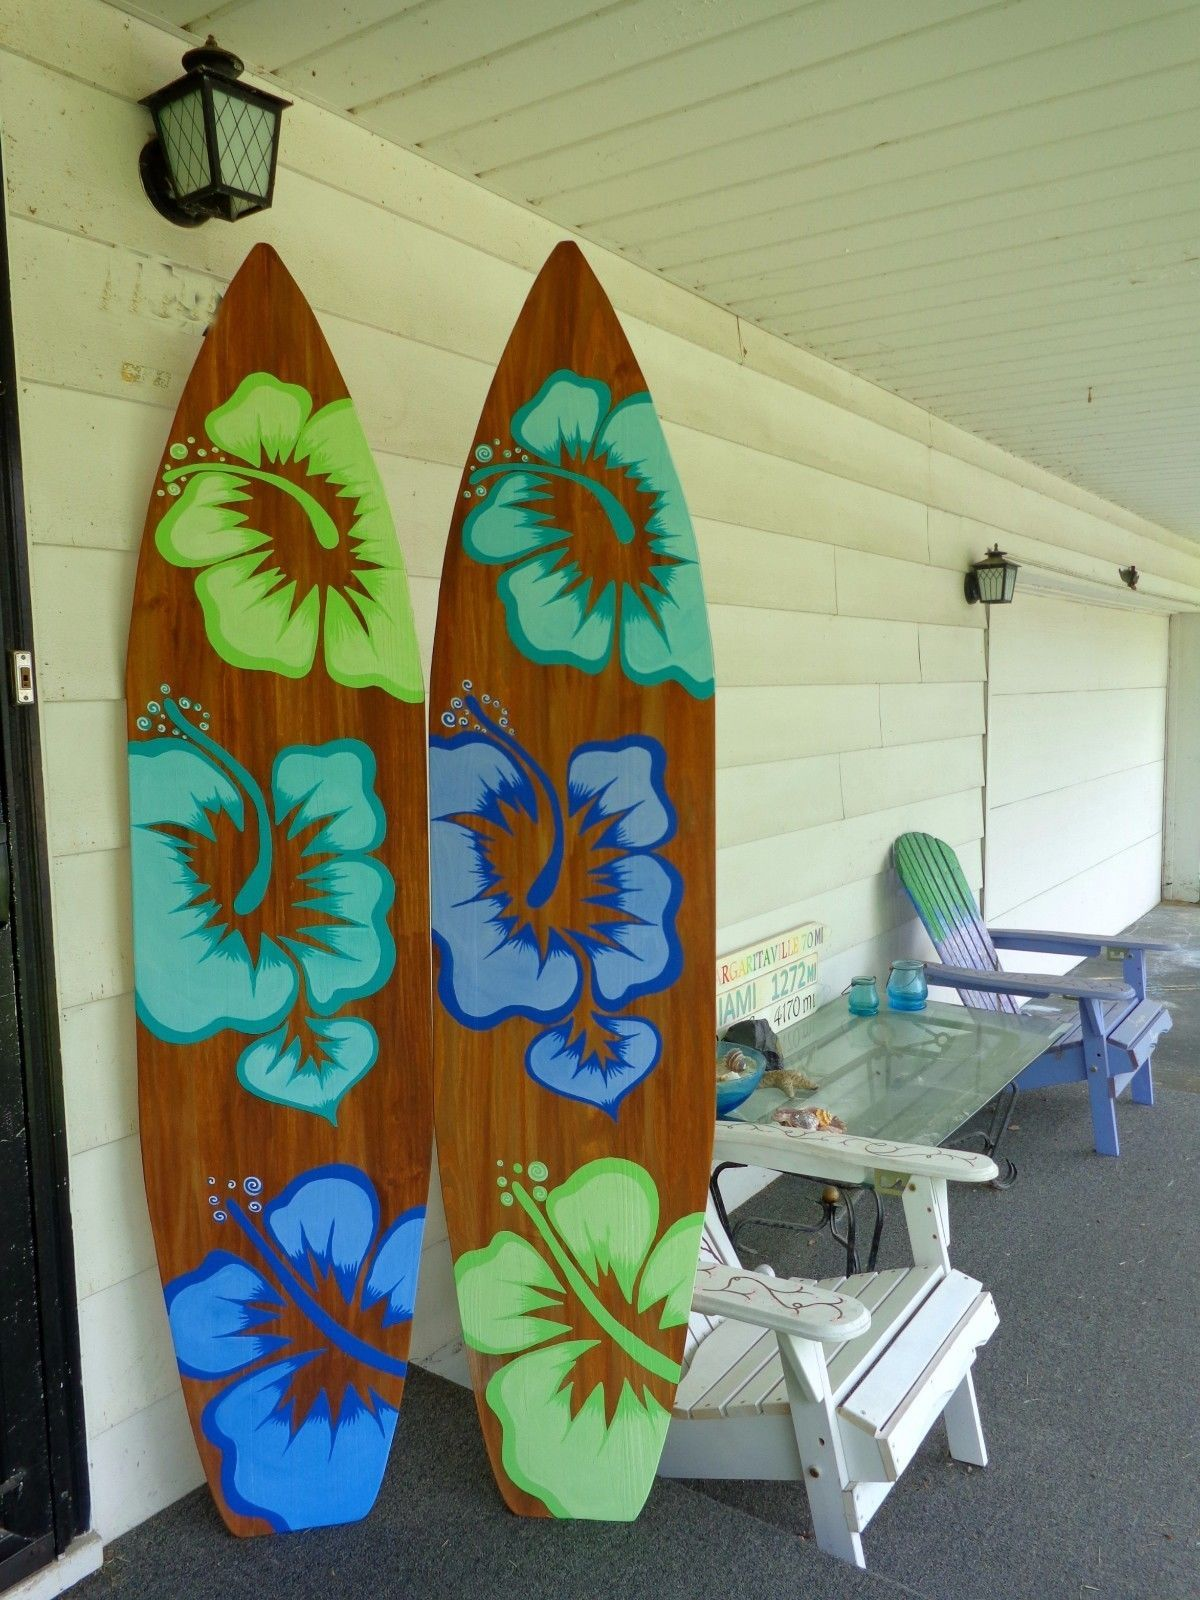 Superieur Home Decor: Two 6 Foot Wood Hawaiian Surfboards Wall Art Decor BUY IT NOW  ONLY